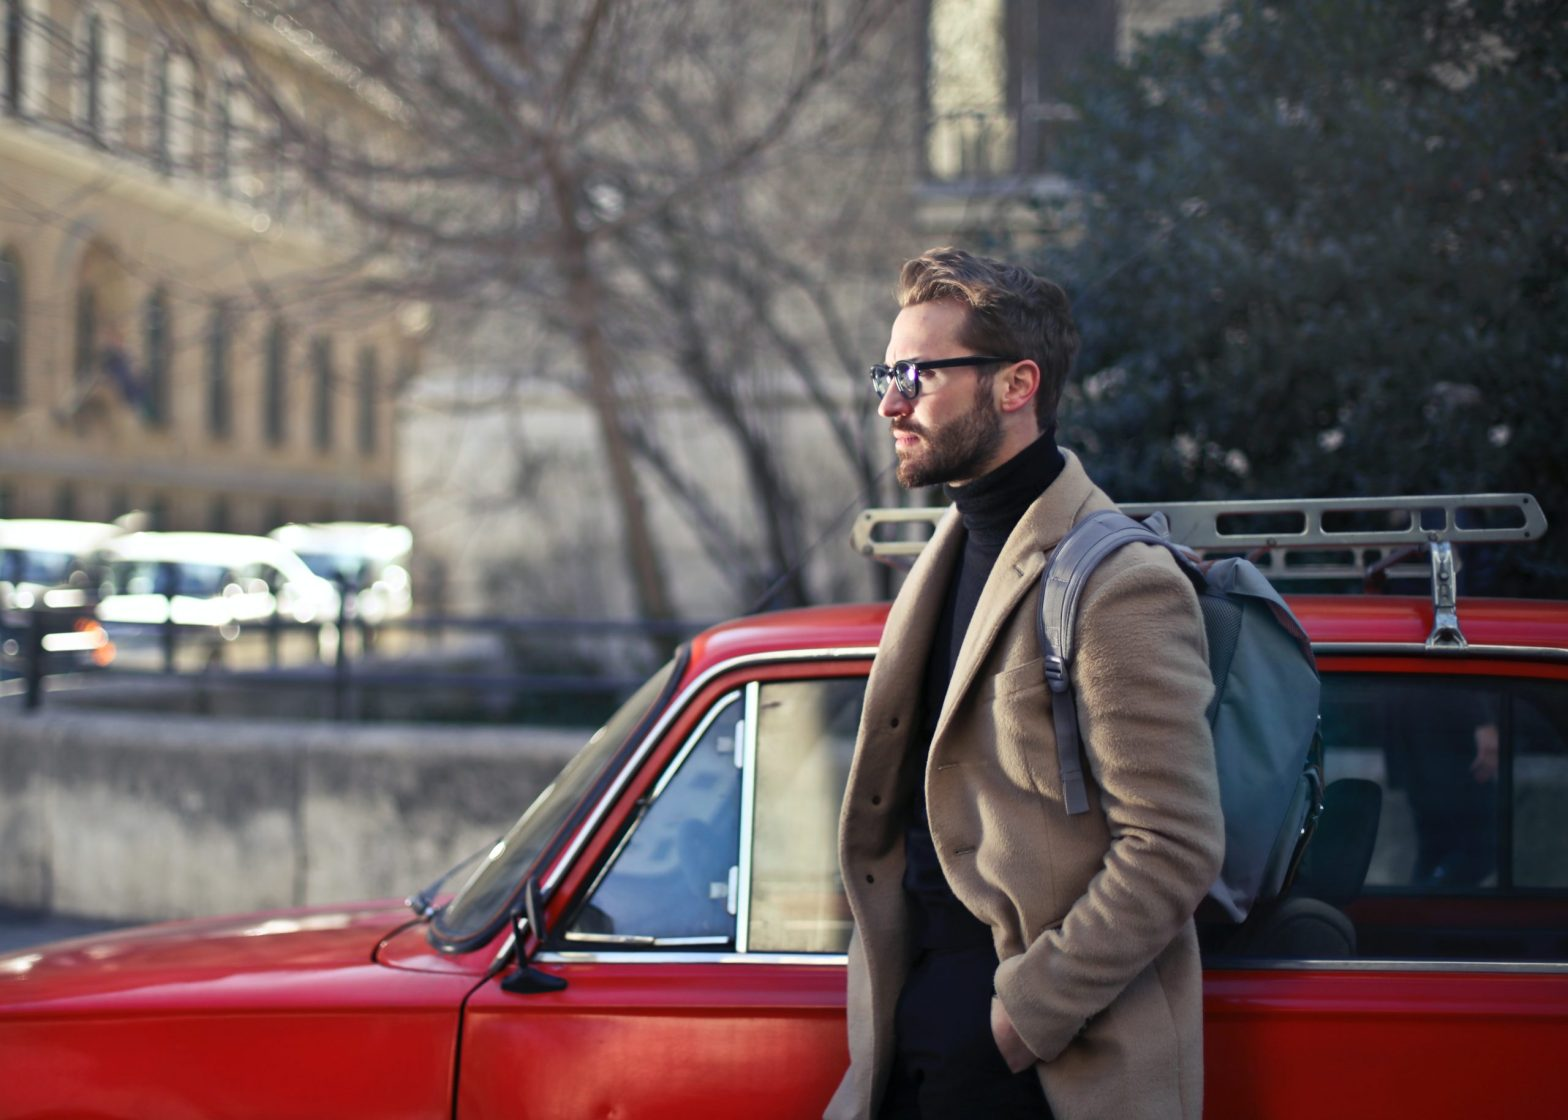 Handsome gentleman looking away with sunglasses - Avoidant Attachment